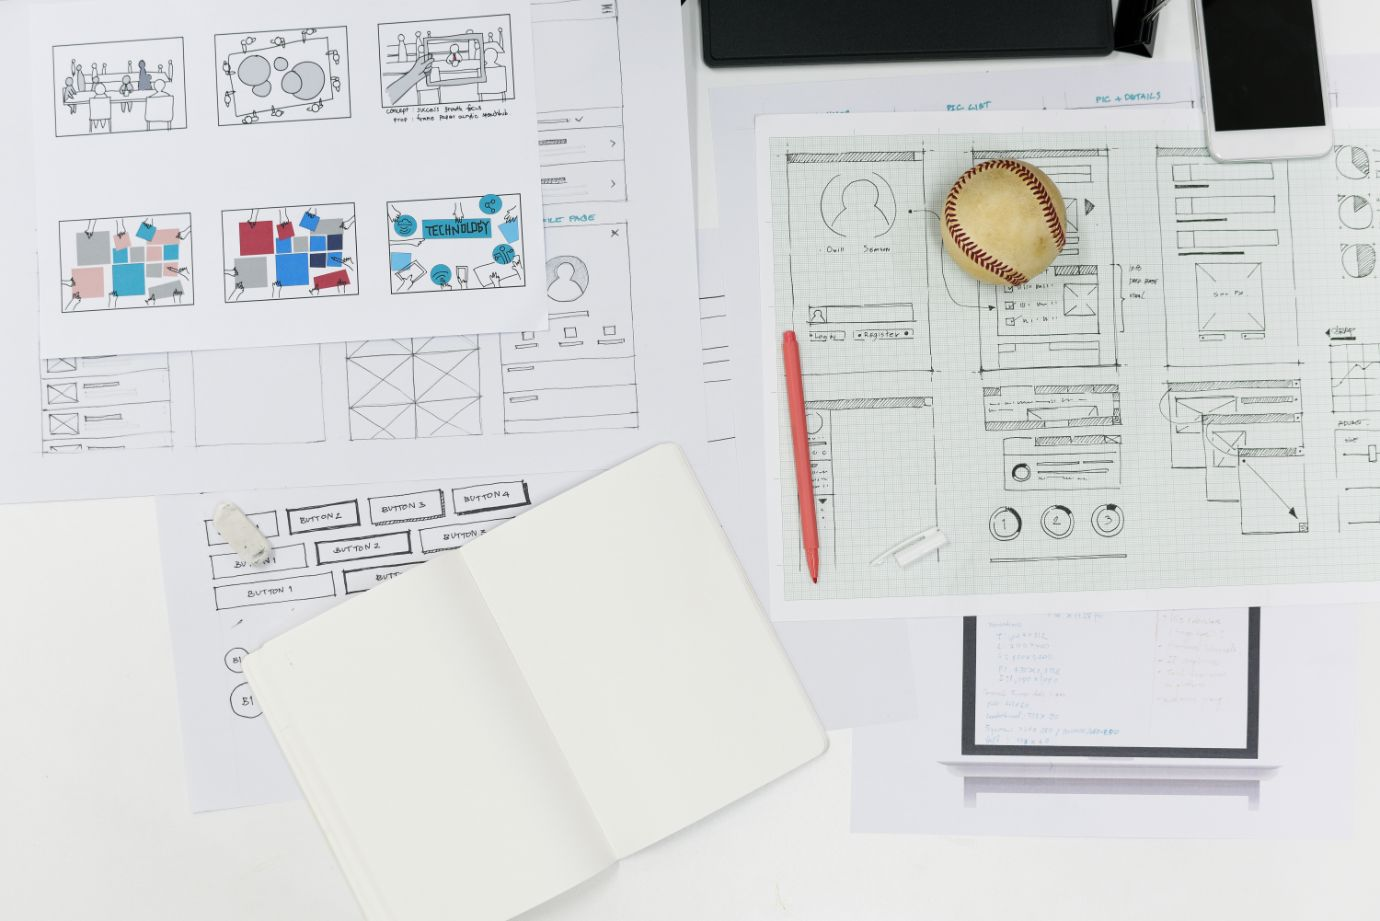 Here is why you need a mockup before starting a design or development